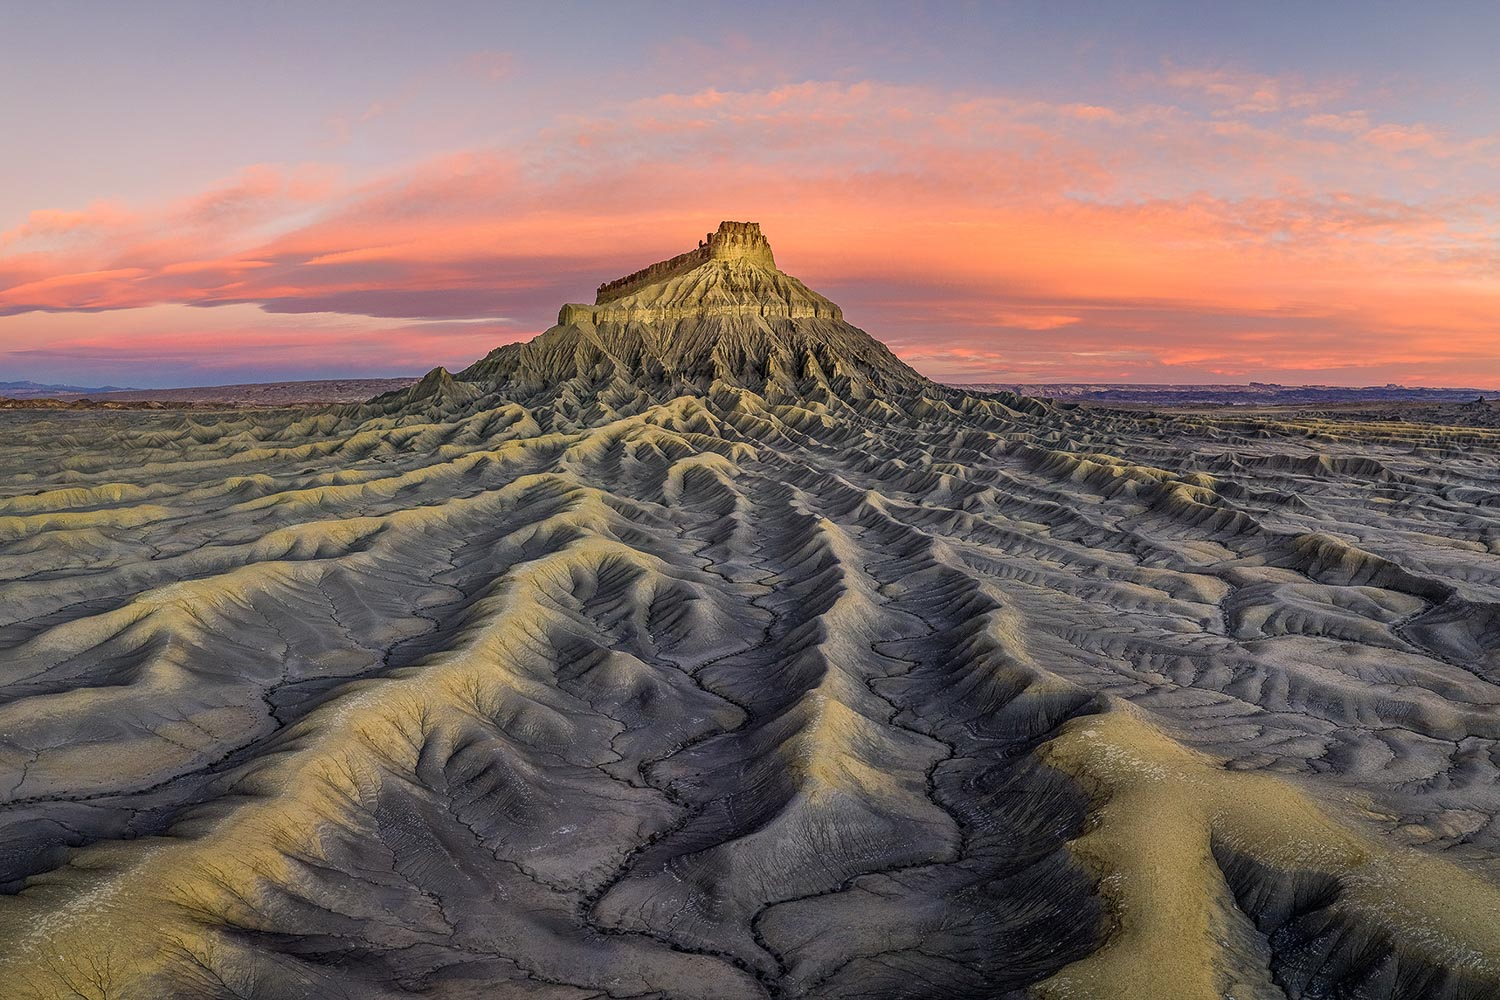 Badlands by Ian Plant